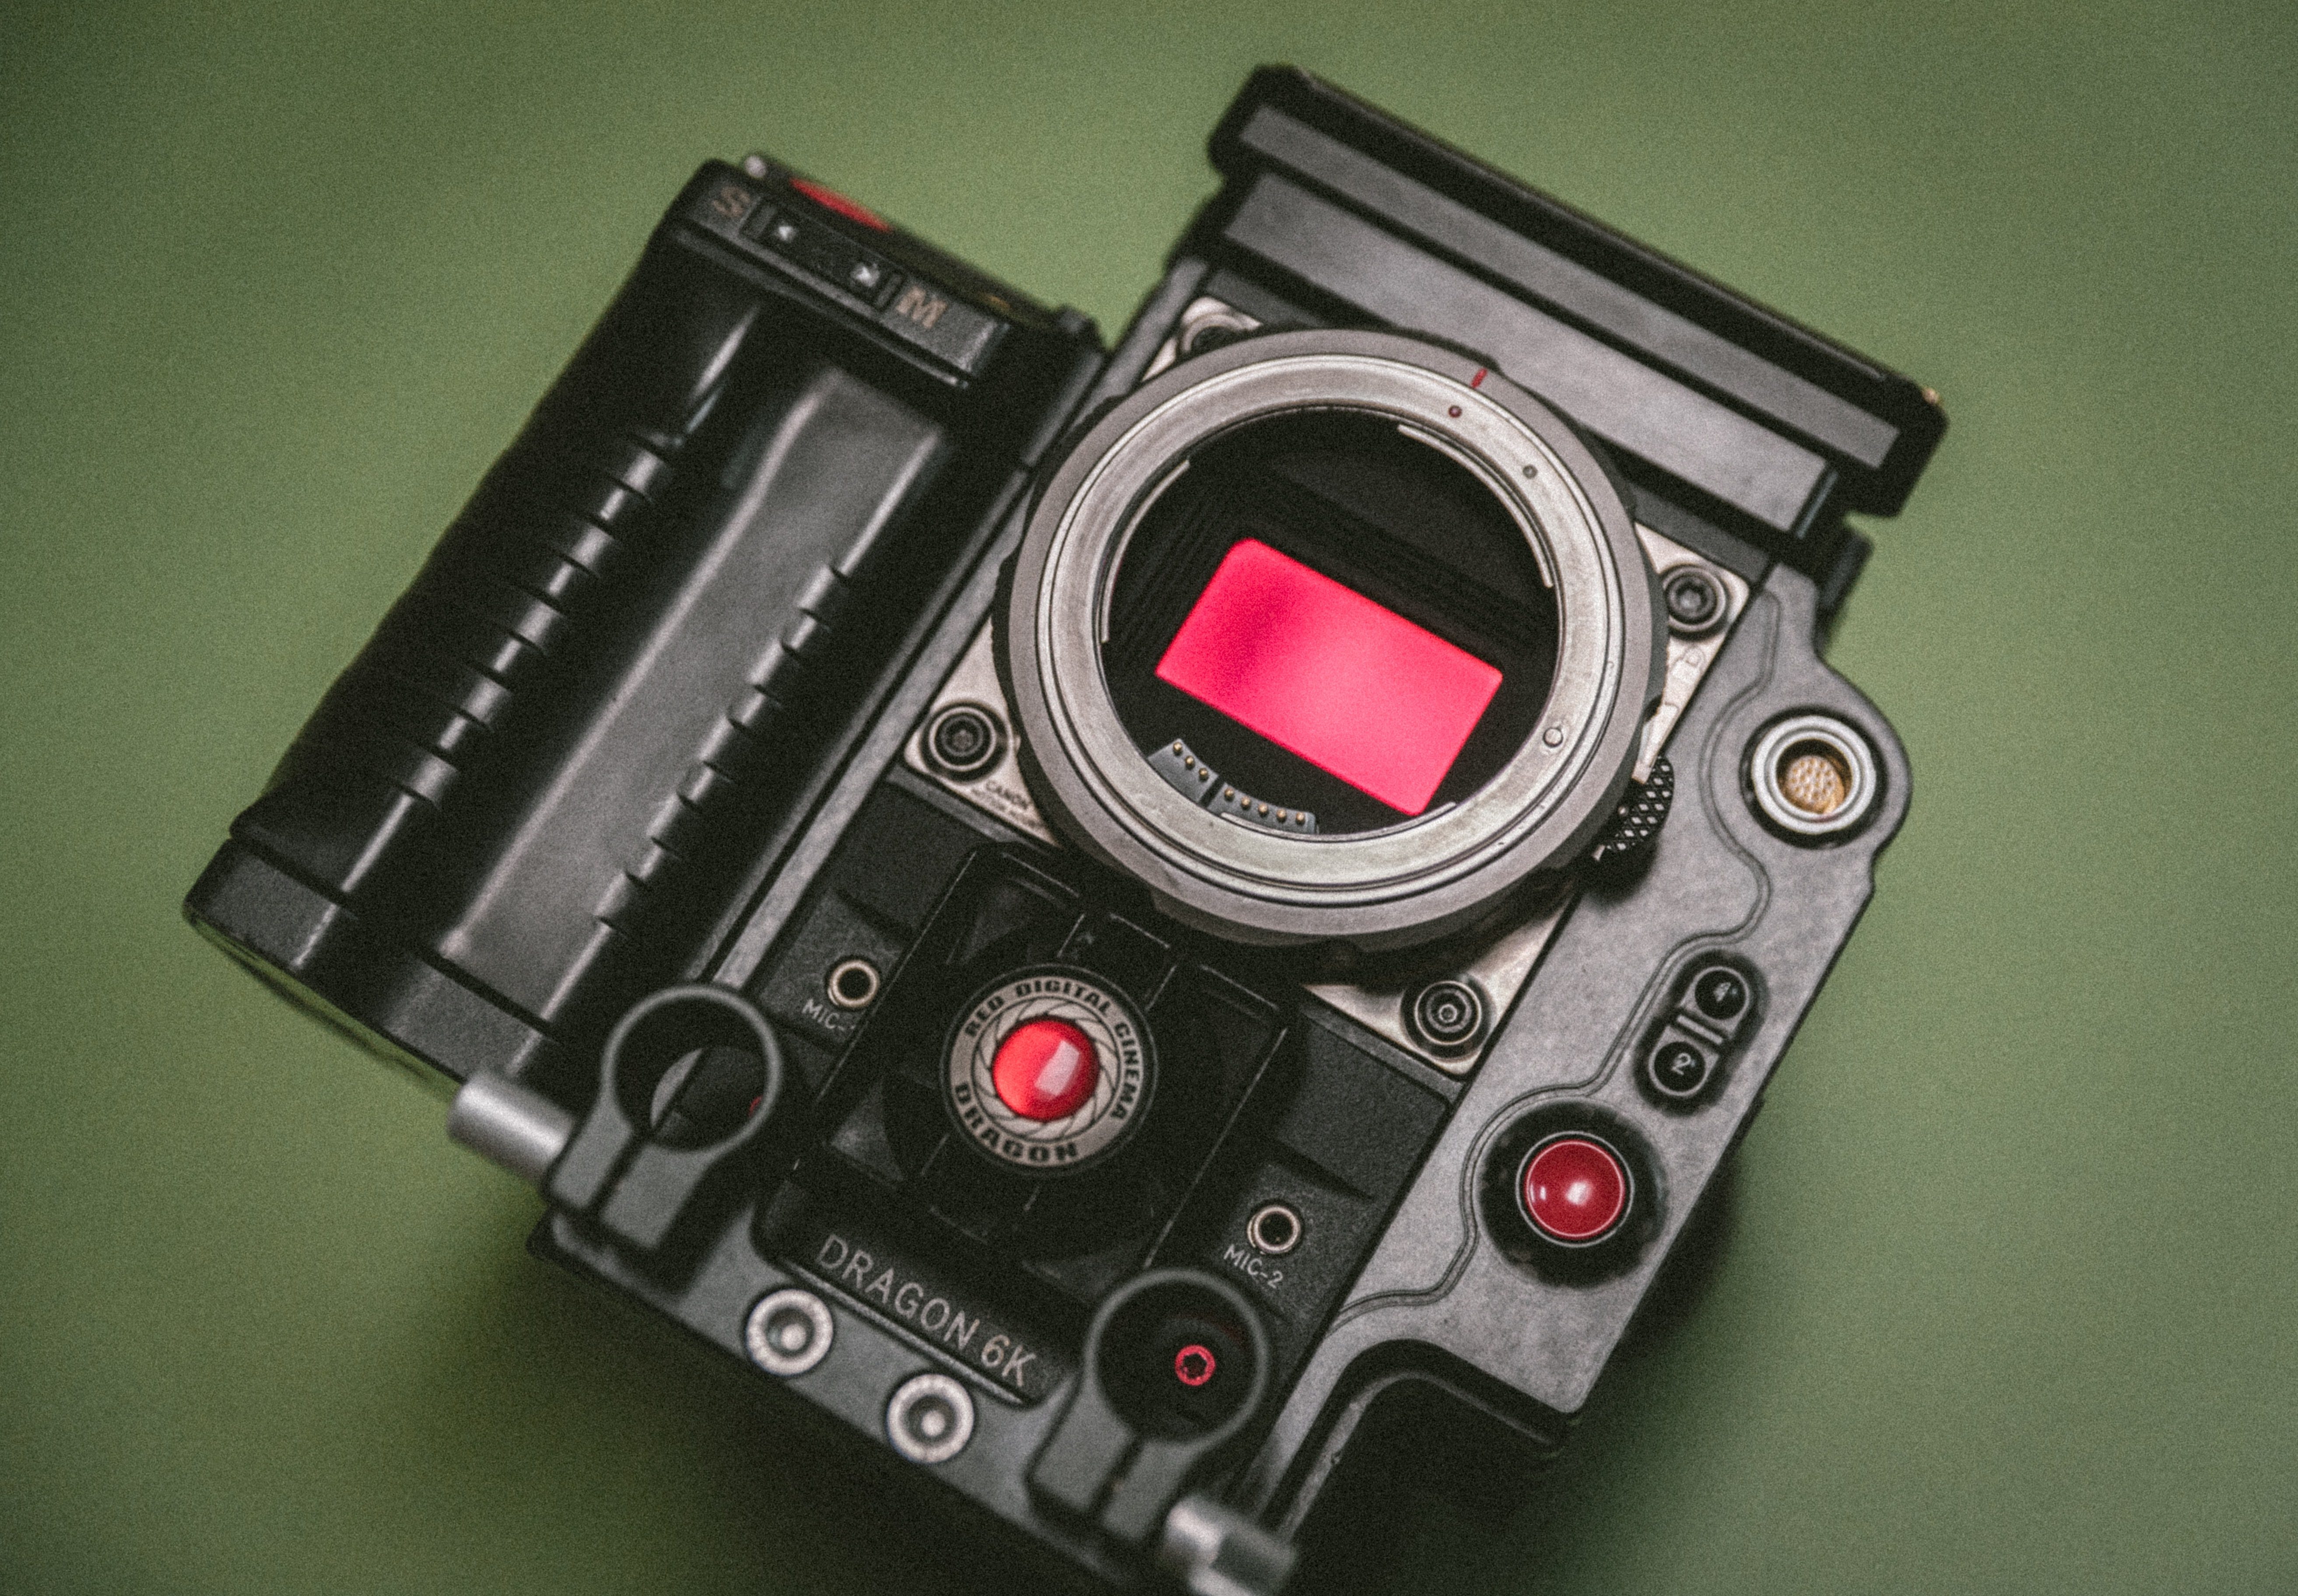 Black Dragon camera with red screen and buttons sits on green surface